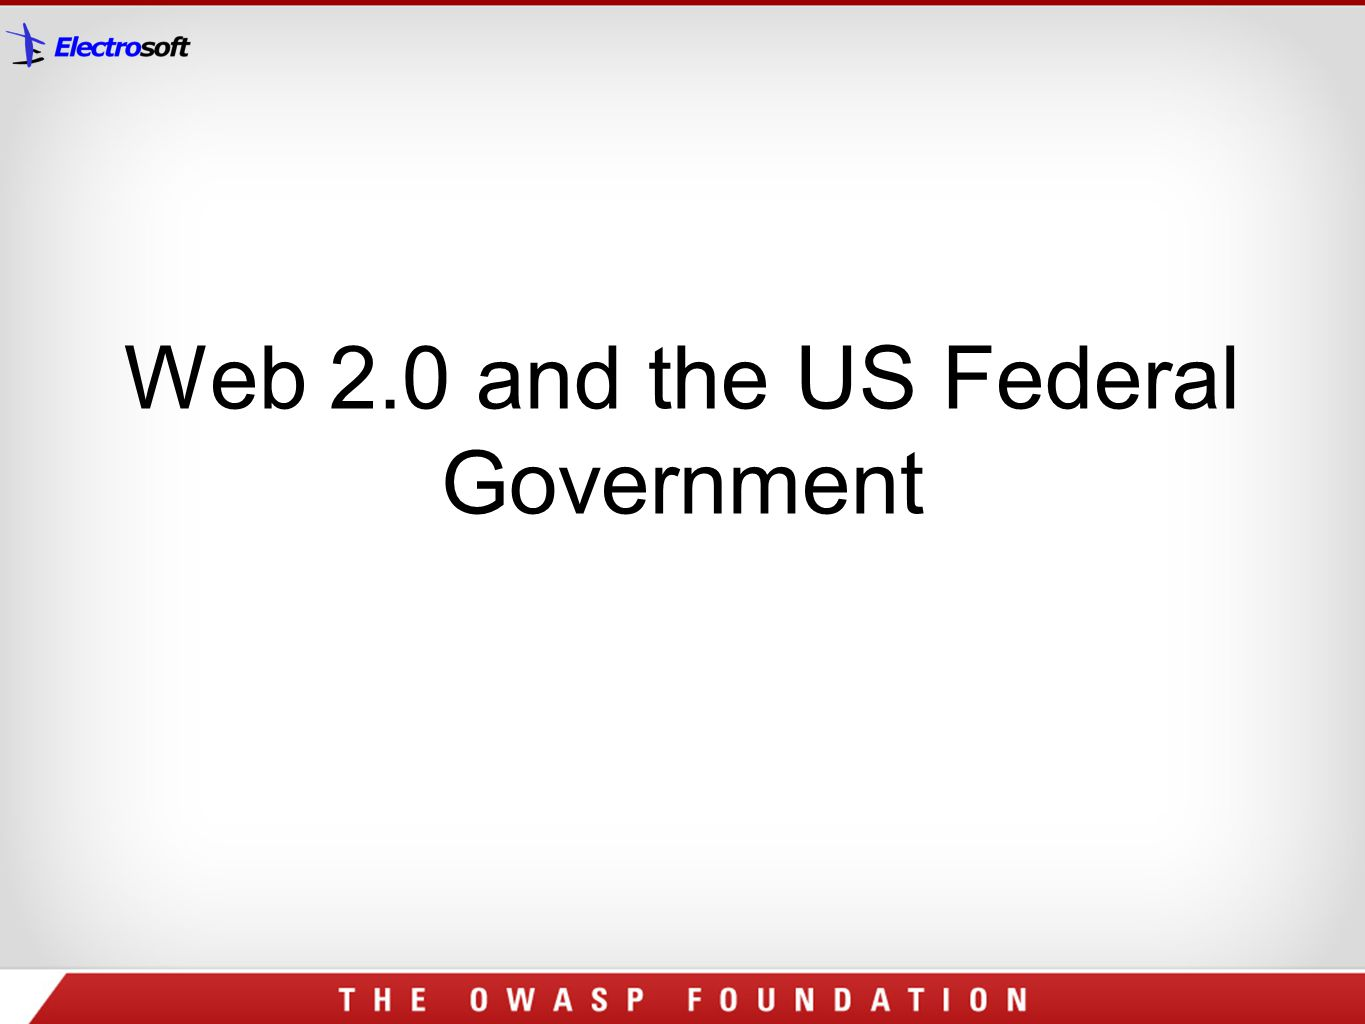 Web 2.0 and the US Federal Government